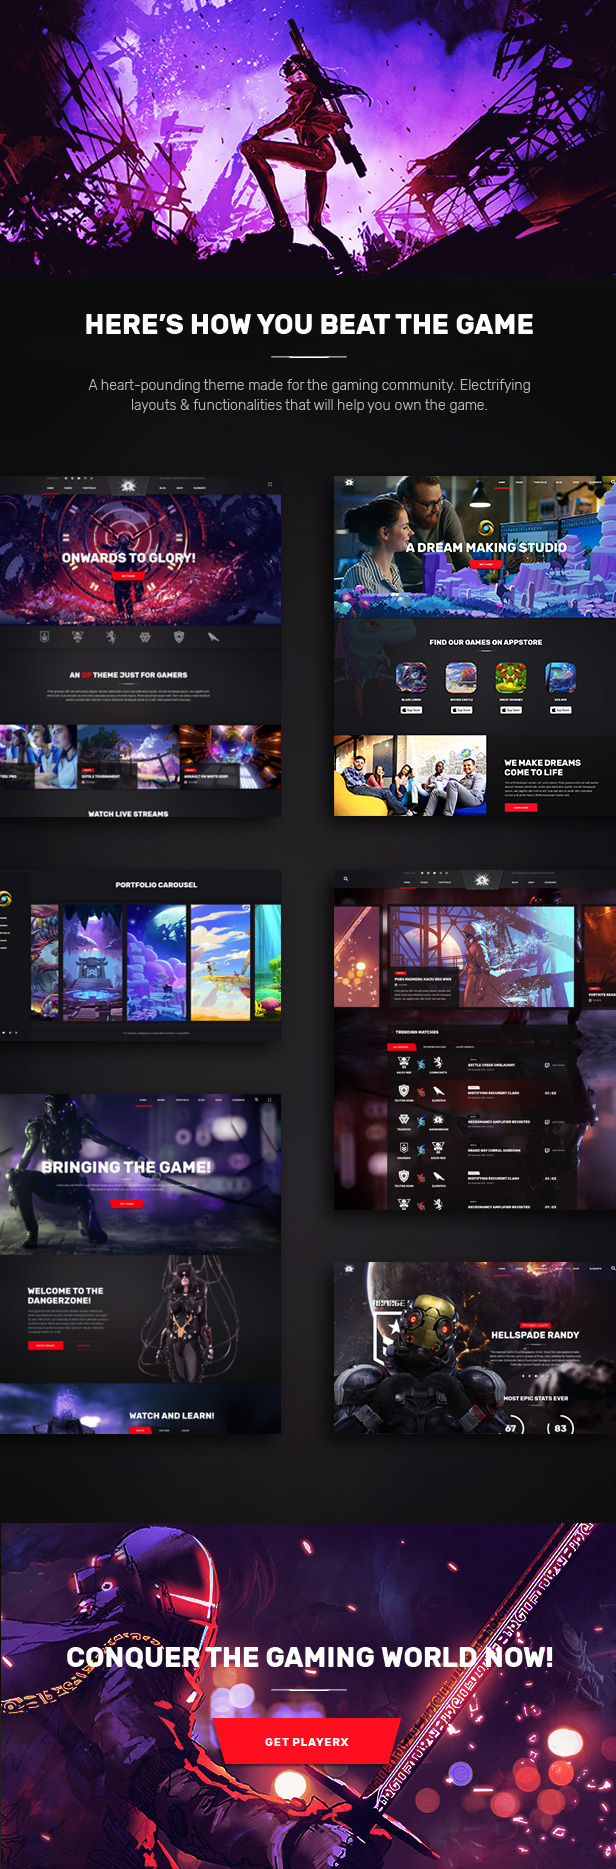 PlayerX - A High-powered Theme for Gaming and eSports - 1